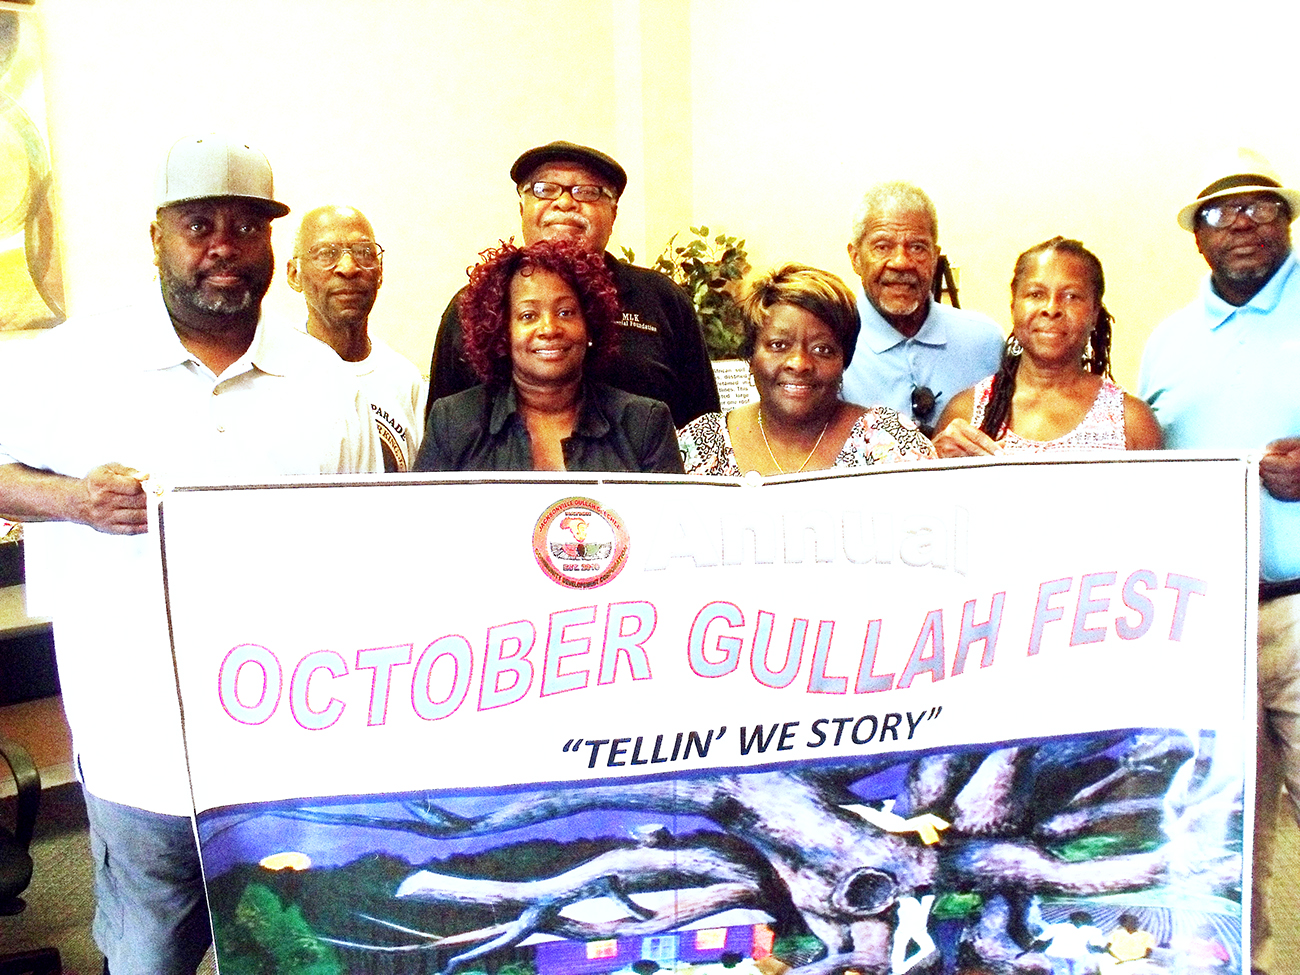 Pictured following avrecent meeting and planning session are members of the Gullah Geechee CDC and Dr. Martin L. King Memorial Foundation. (FRONT) L-R: Raymond Mc Nair, Darlene Neal, Sandra Morene-Chairman, Gullah Geechee CDC, Norma Sawyer and Eugene Francis. (BACK): Andr'e X Neal, Gary Thomas-Chairman and Robert Flowers. Andrea X photo